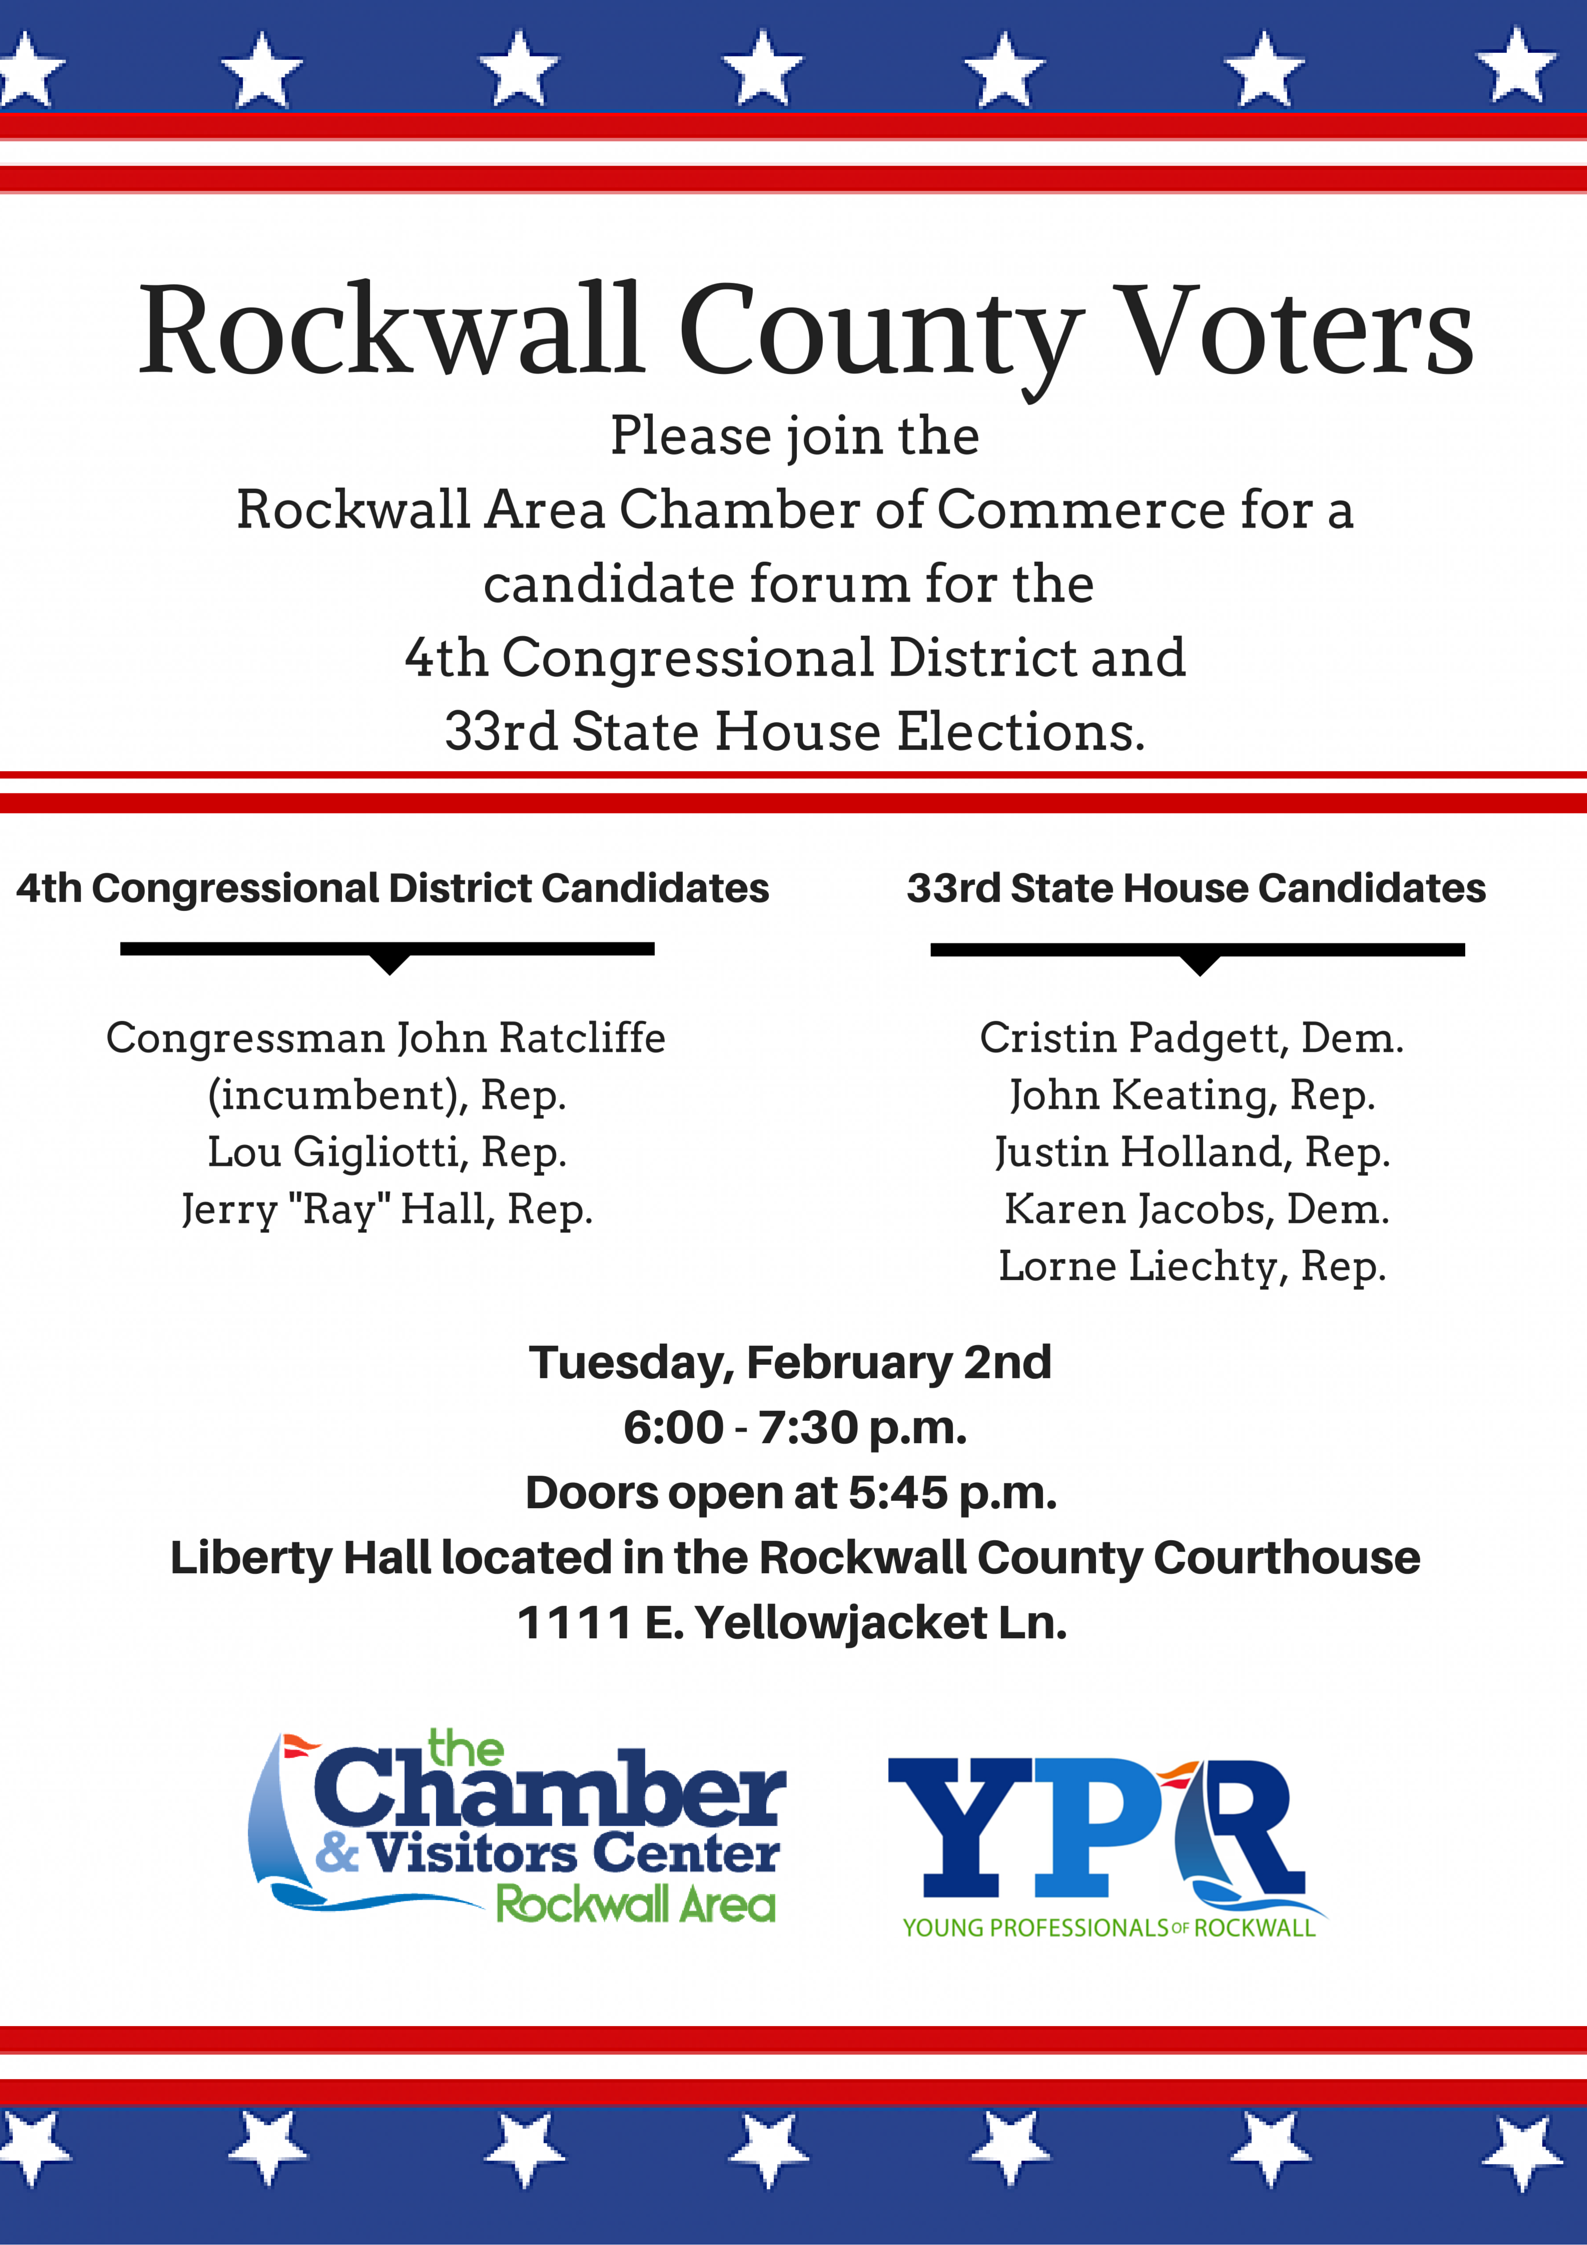 Candidate Forum Feb 2 at Rockwall County Courthouse